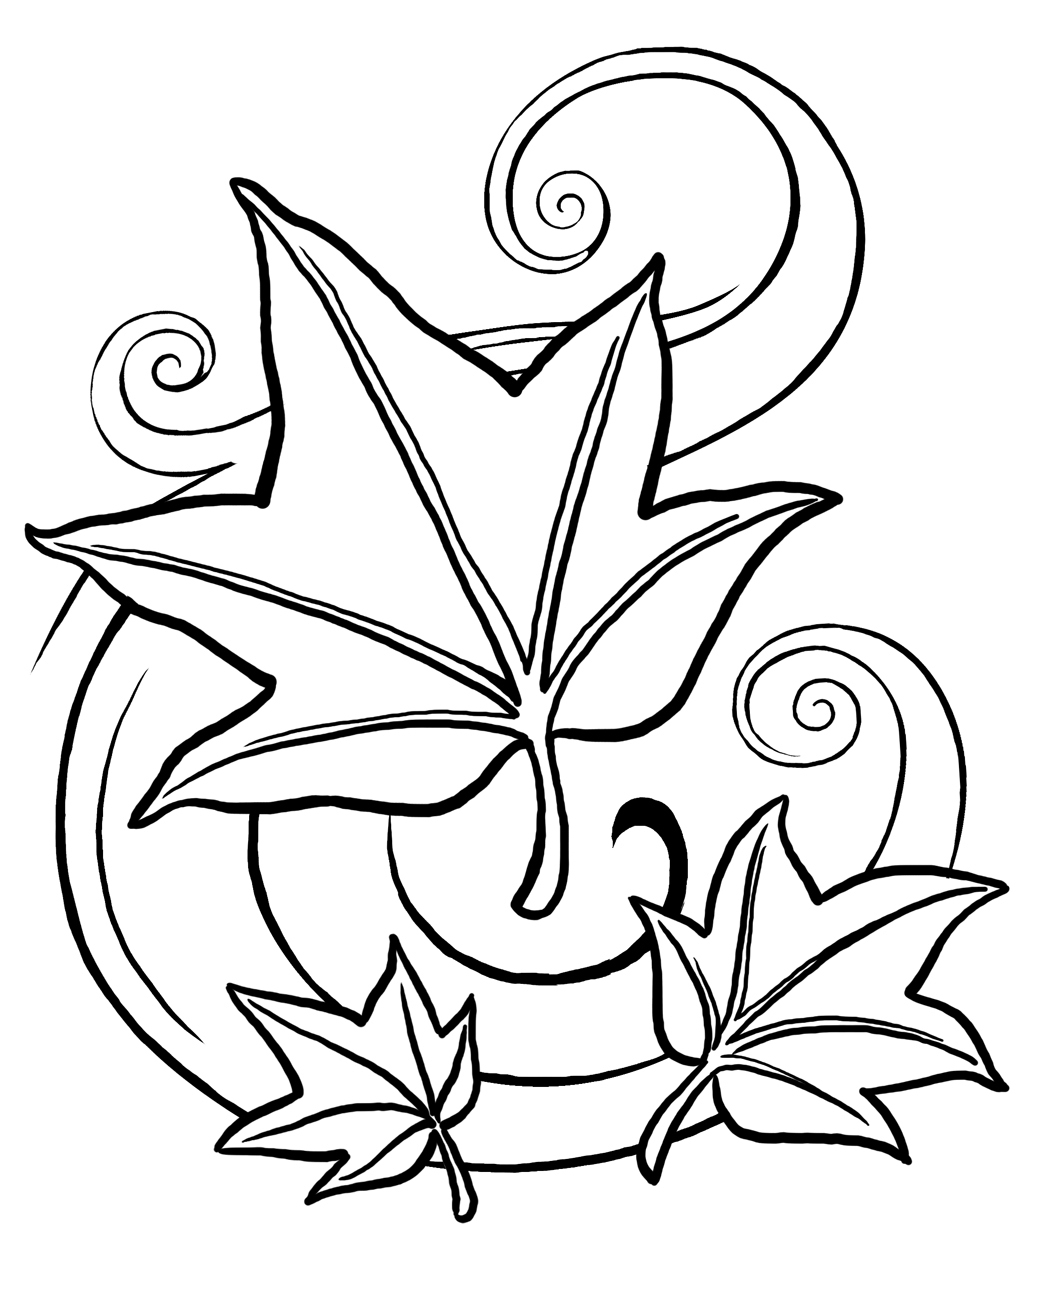 Free printable leaf coloring pages for kids for Coloring pages autumn leaves